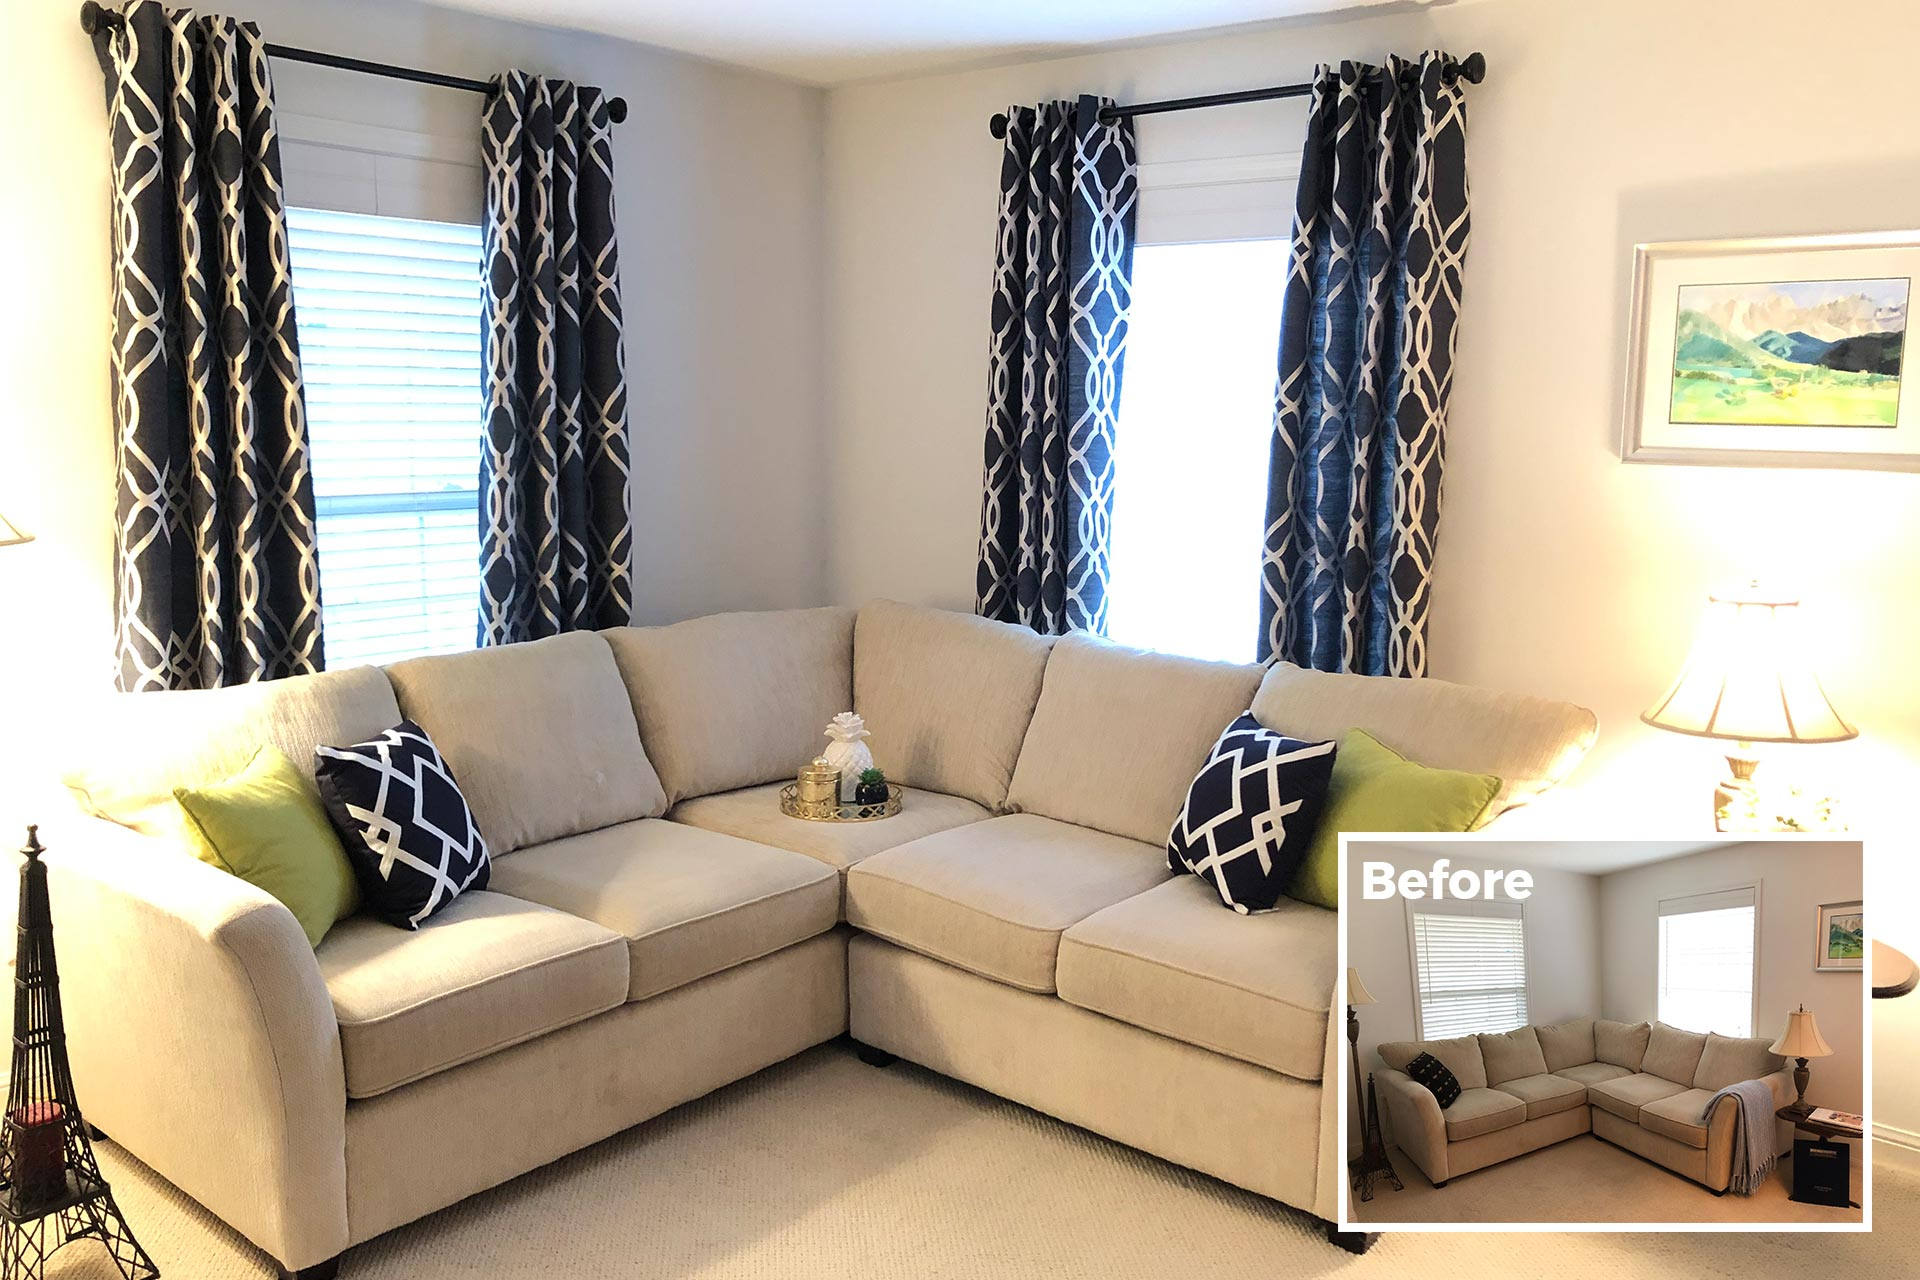 Before-and-After-Surprise-Living-Room-Makeover